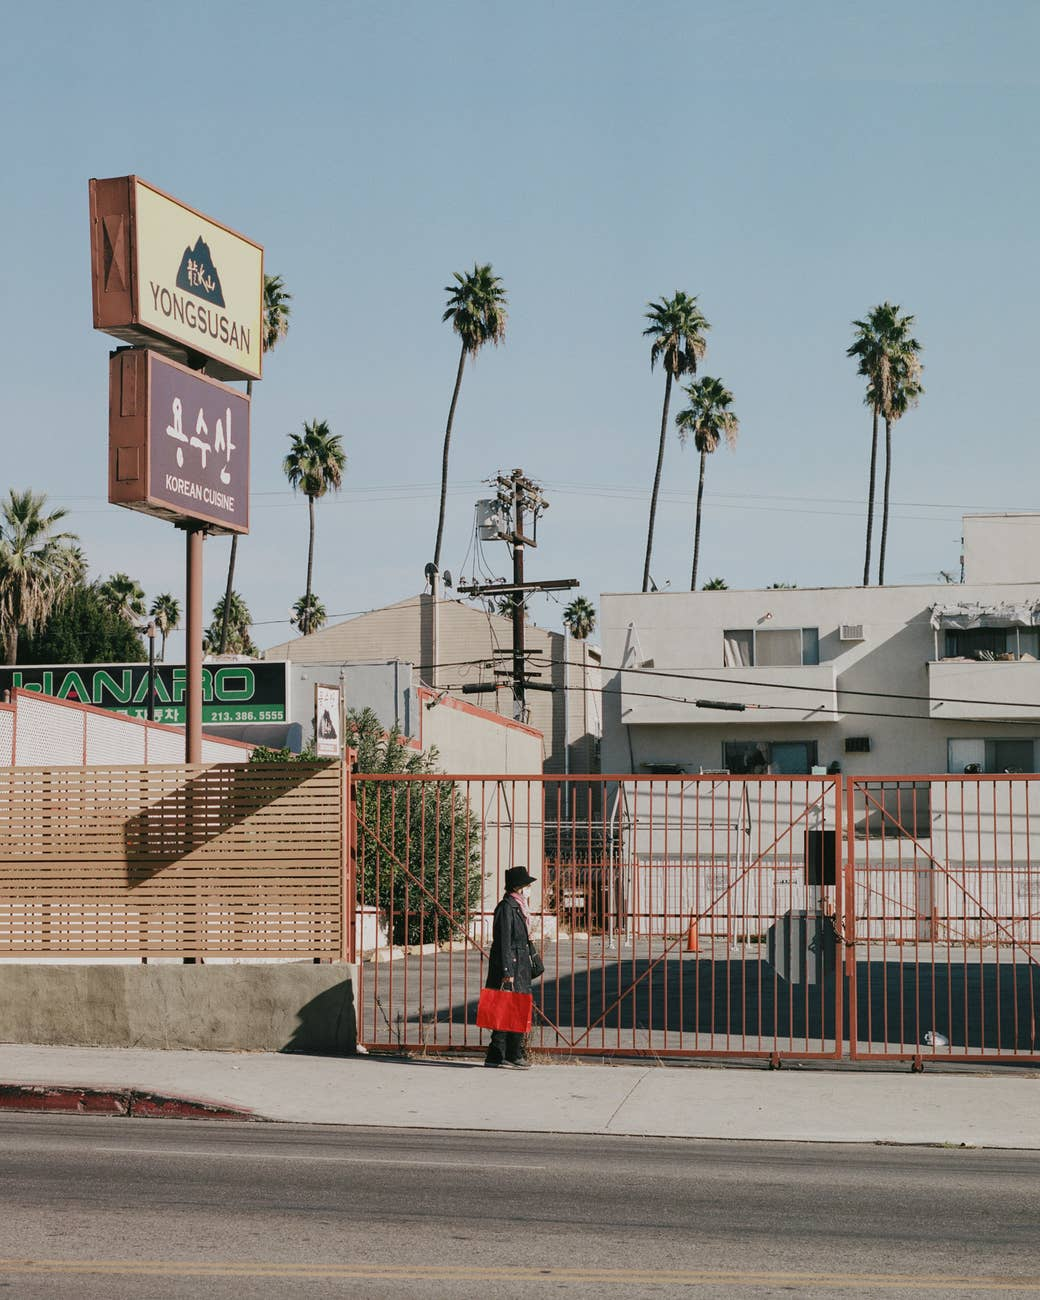 A woman with a red bag walks by a gate in Koreatown